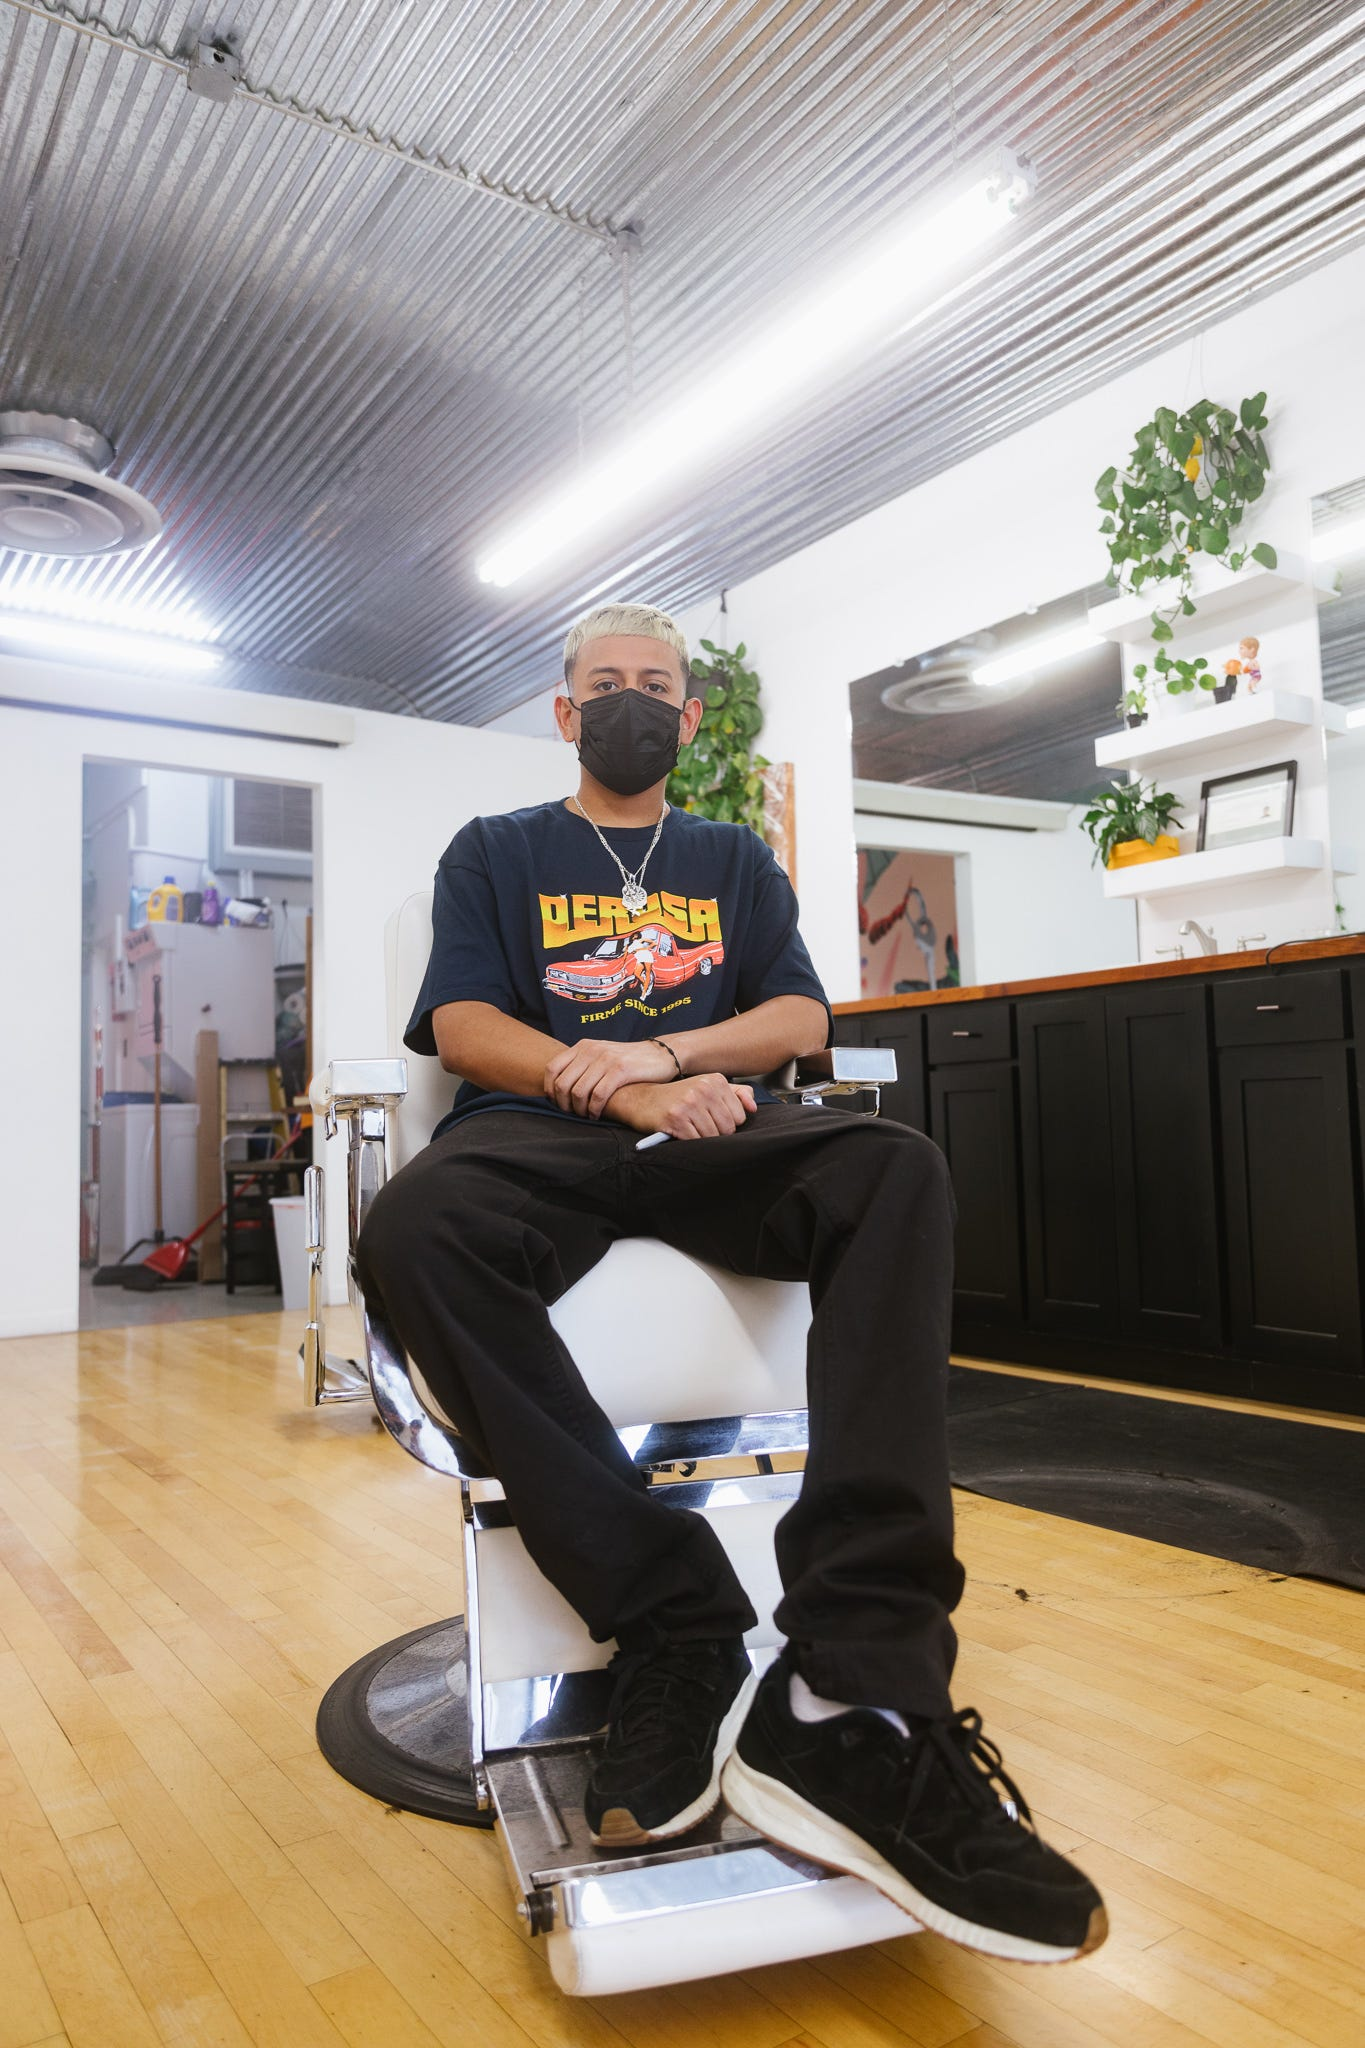 Jessie A. Ponce, 26, is the owner of the downtown Phoenix barbershop The Greater Good.